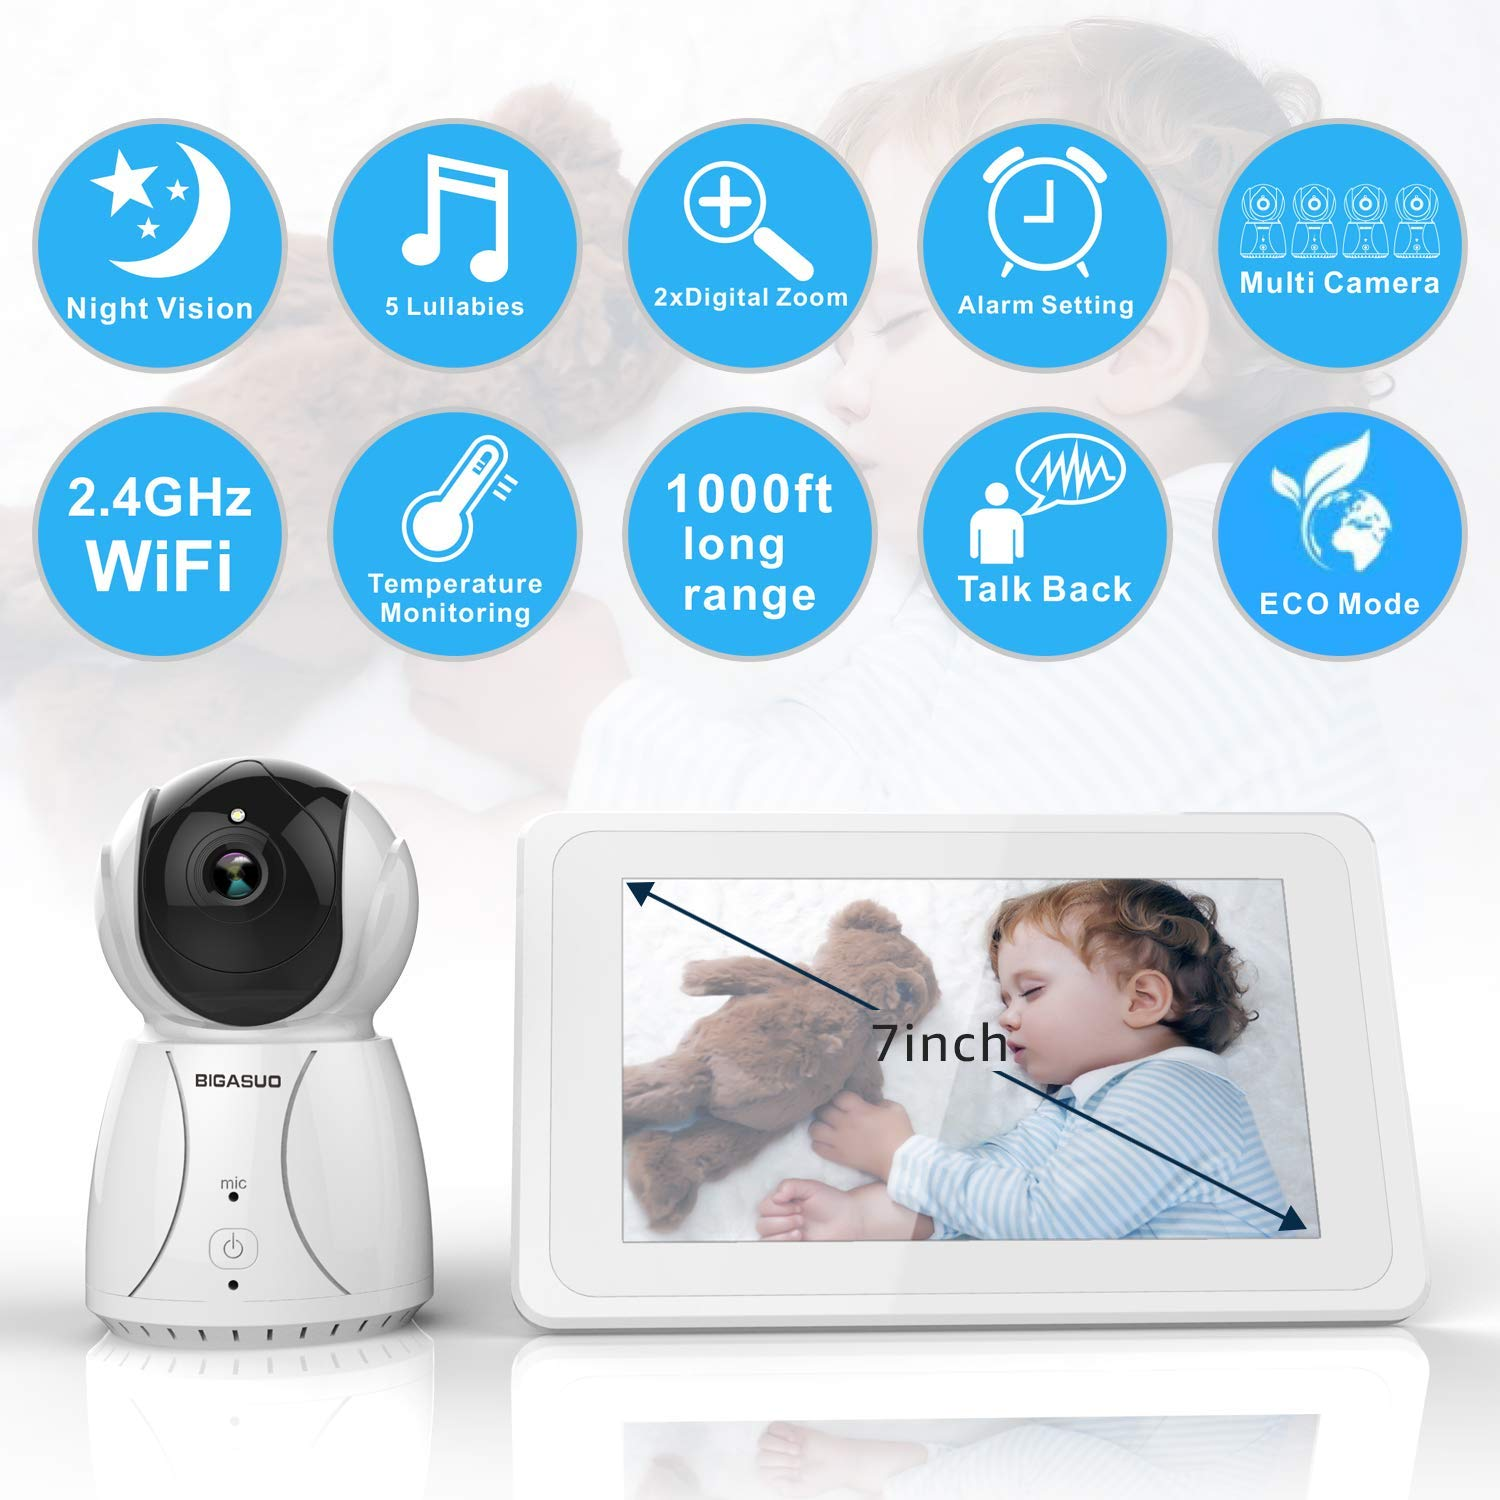 BIGASUO Upgrade Baby Monitor, Video Baby Monitor 7'' Large LCD Screen, Baby Monitors with Camera and Audio Night Vision, Support Multi Camera, Two Way Talk Temperature Sensor, Built-in Lullabies by BIGASUO (Image #2)